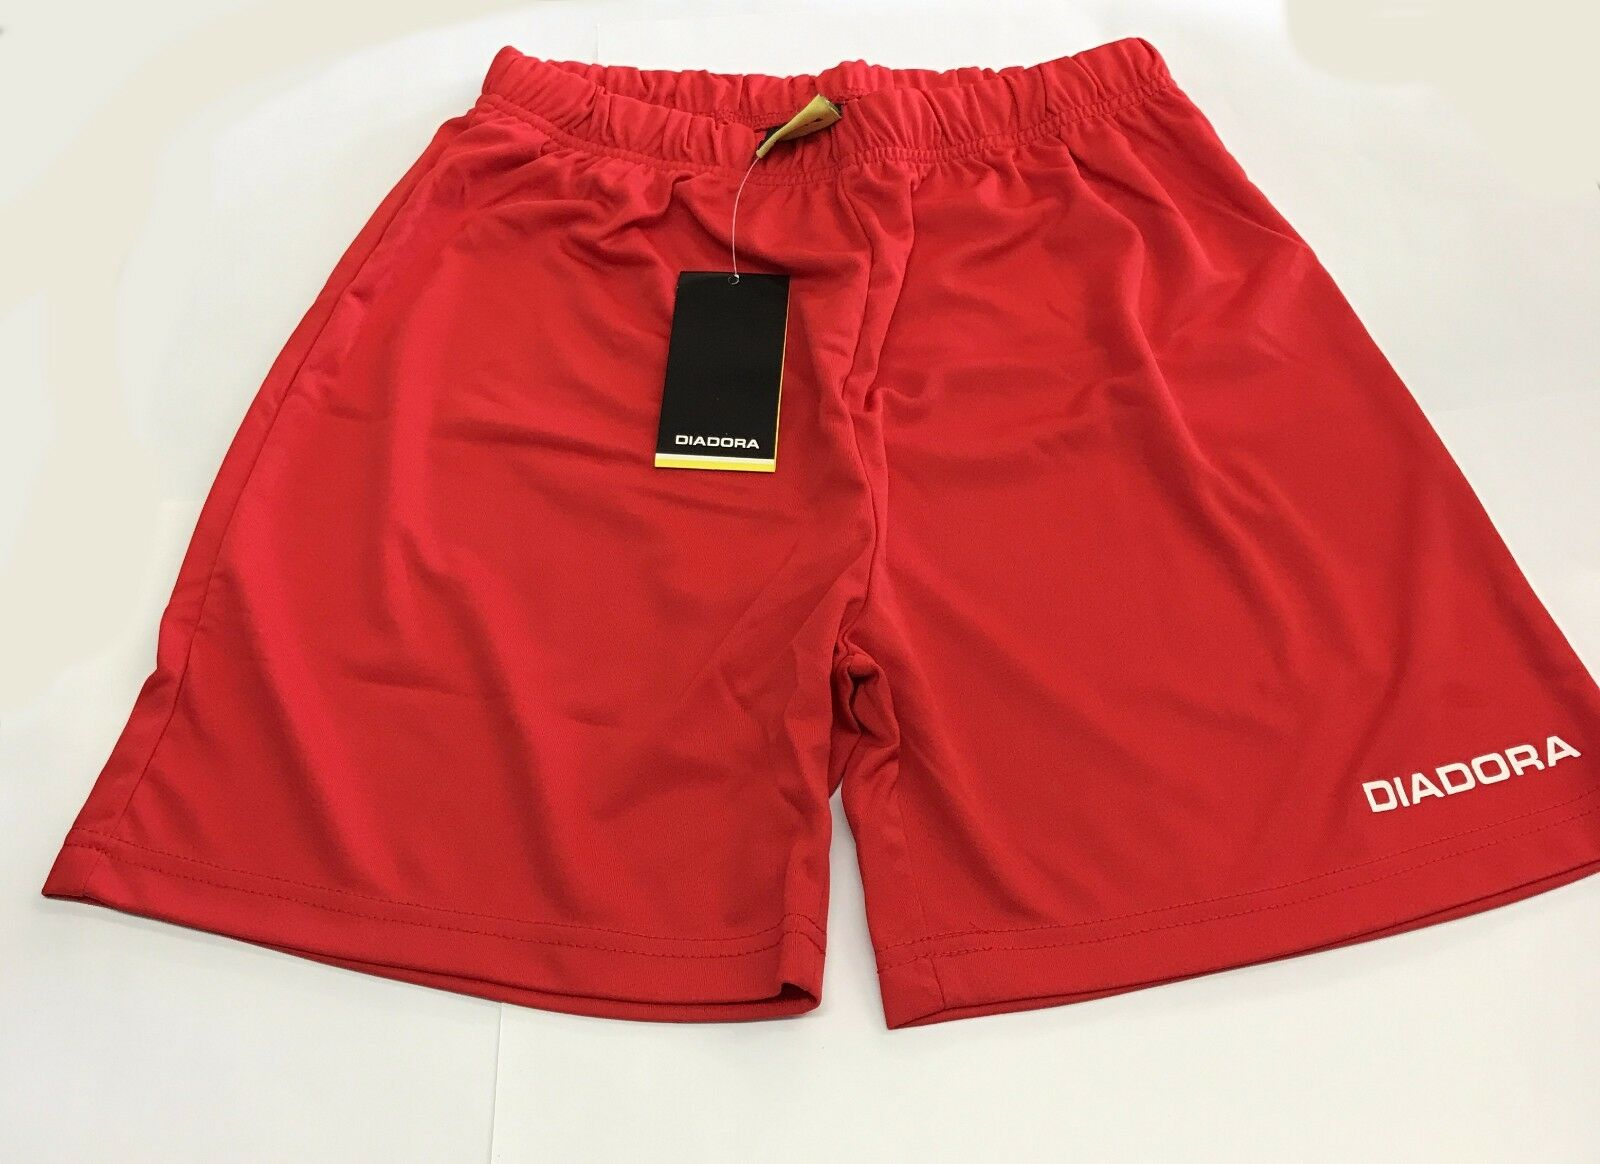 SET (12) DIADORA FOOTBALL SHORTS XL BOYS  RRP  - RED  Free Postage